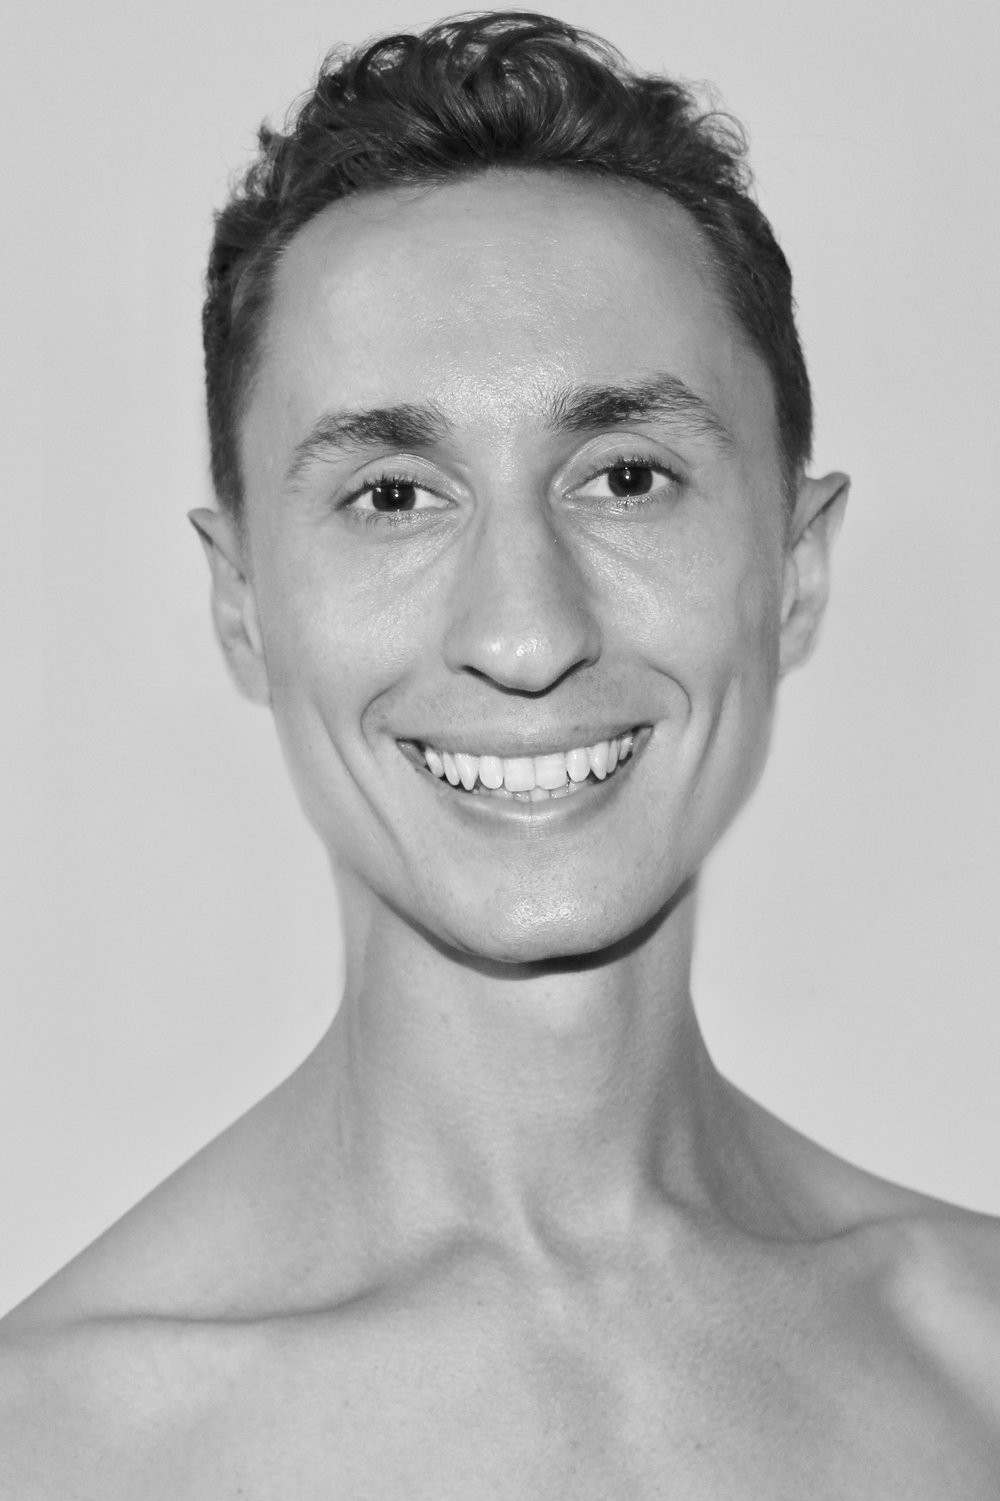 Sam O'Brien Company Artist   Sam began his dance training in his hometown of Brisbane at the Trudy Constable School of Dance and then the Danzart Studio before commencing full time studies at the Australian Dance Performance Institute. Whilst a student there he completed his Royal Academy of Dance Advanced examinations with Distinction, was twice a semi finalist in the McDonalds Ballet Scholarships in Sydney and was a finalist in the Youth America Grand Prix in New York City. Sam then went on to train on full scholarship at the Joffrey Academy of Dance Chicago's trainee program, learning and performing a wide variety of repertoire from classical ballet's to new neoclassical and modern works.  After two years in Chicago Sam was offered a position with The Sarasota Ballet where he was a member of the Corps de Ballet for five seasons, learning and performing corps and soloist roles in ballets by Sir Frederick Ashton, Christopher Wheeldon, George Balanchine, Sir Kenneth Macmillan, Agnes De Mille, Paul Taylor, Anthony Tudor, Joel Layton and many more. Sam also performed with the company at Ballet Across America III at the Kennedy Center, the internationally renowned Sir Frederick Ashton Festival in Sarasota, the 11th and 13th annual Fall For Dance Festival at New York City Center and the company's A Knight of British Ballet engagement at the Joyce Theater in New York City.  He then went on to dance with Ballet San Antonio performing in works by then Artistic Director Willy Shives as well as Gerald Arpino and George Balanchine. In 2018 Sam was selected to compete in the Paris Opera Ballet's annual  Concours  dancer recruitment competition held at the Palais Garnier.  Sam is also a certified Barre Attack instructor. He is grateful and excited to be joining the Melbourne City Ballet for the 2019 season.